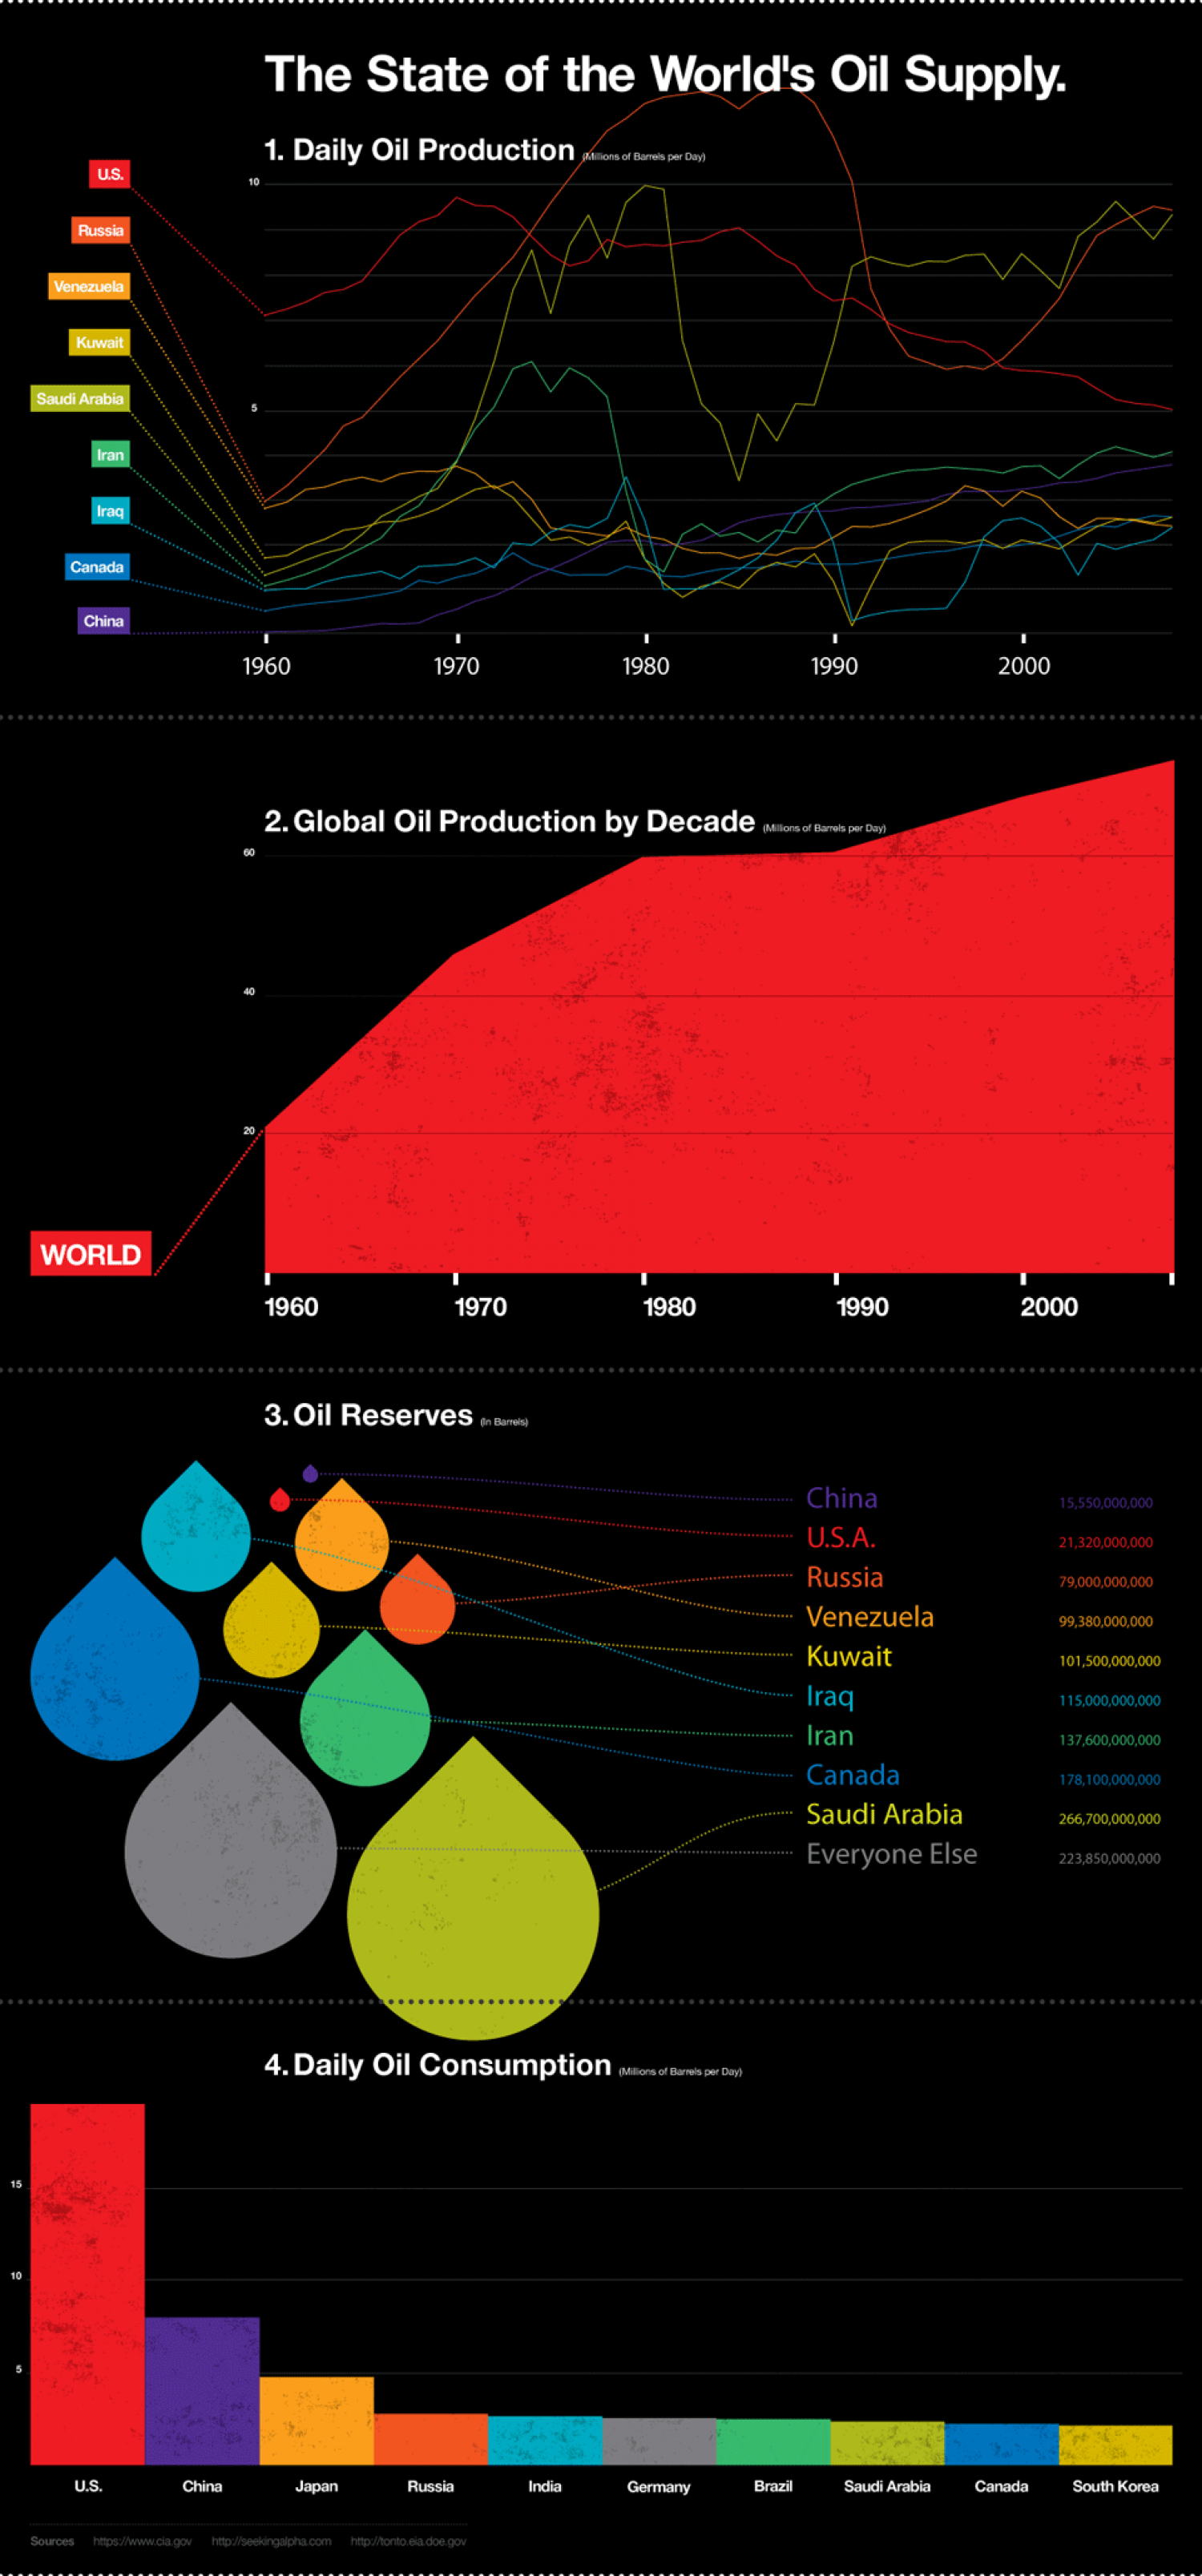 The State of the World's Oil Supply Infographic